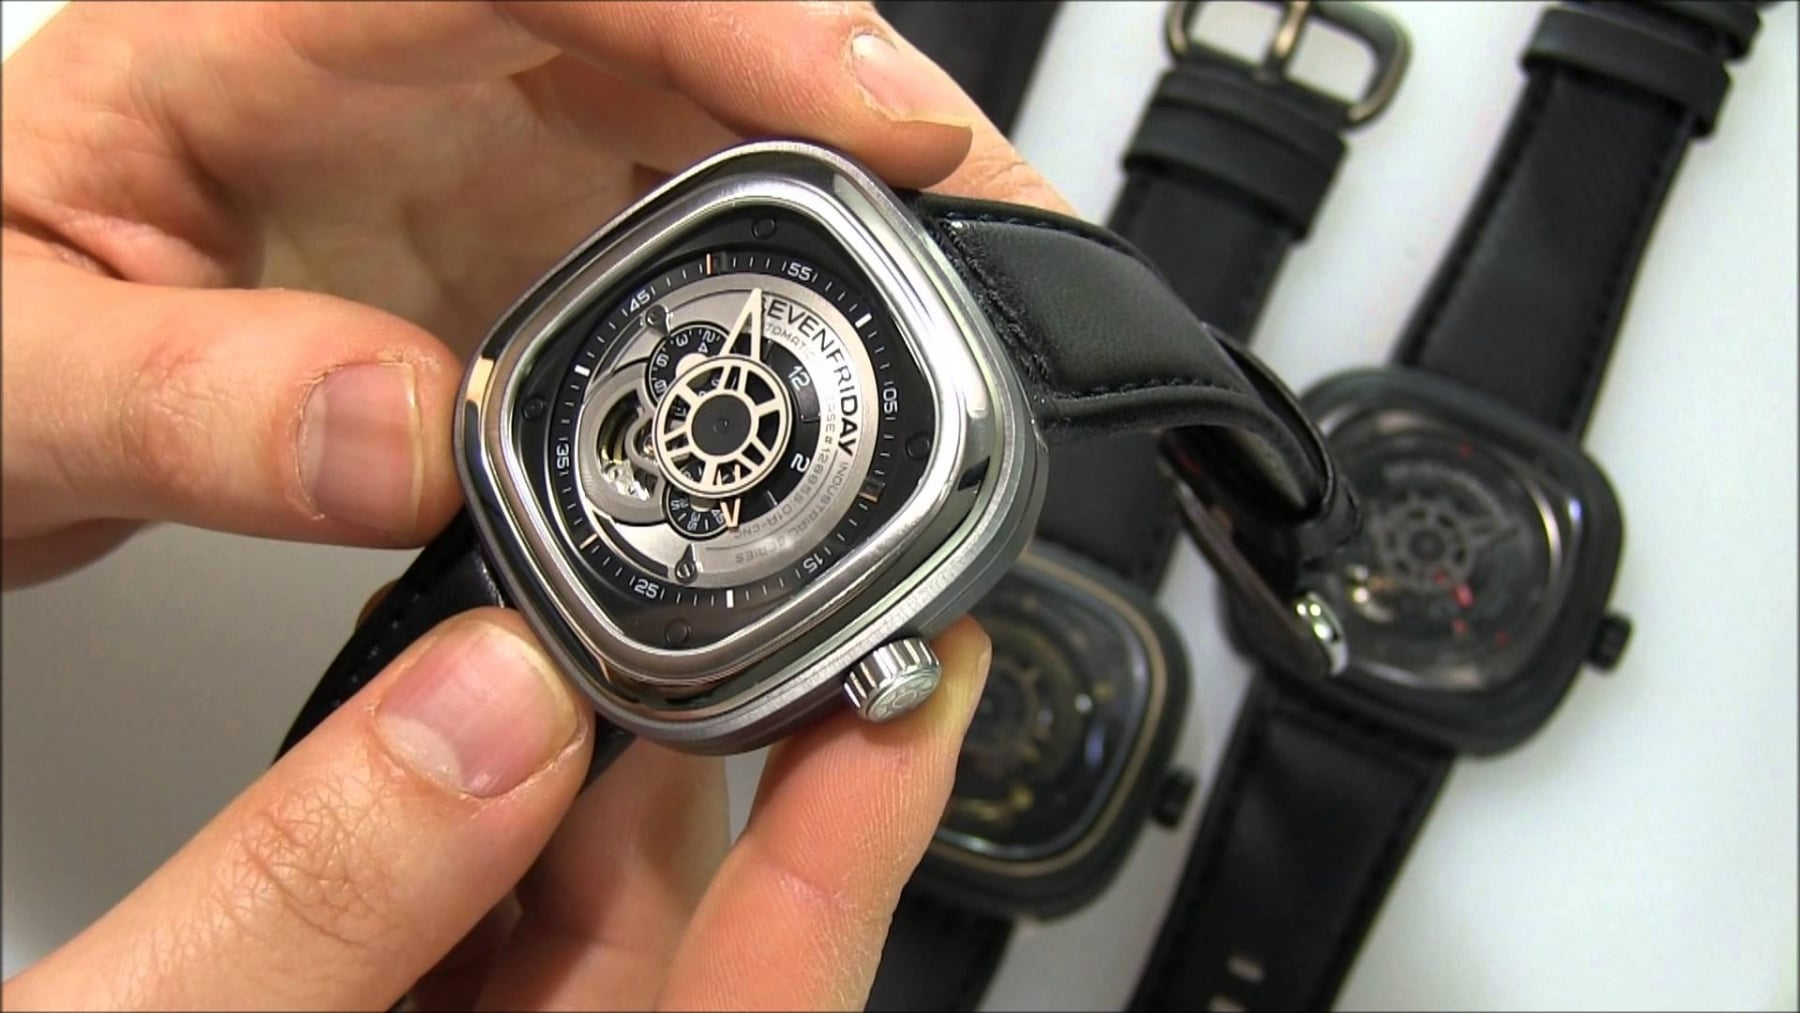 sevenfriday watch in the hand